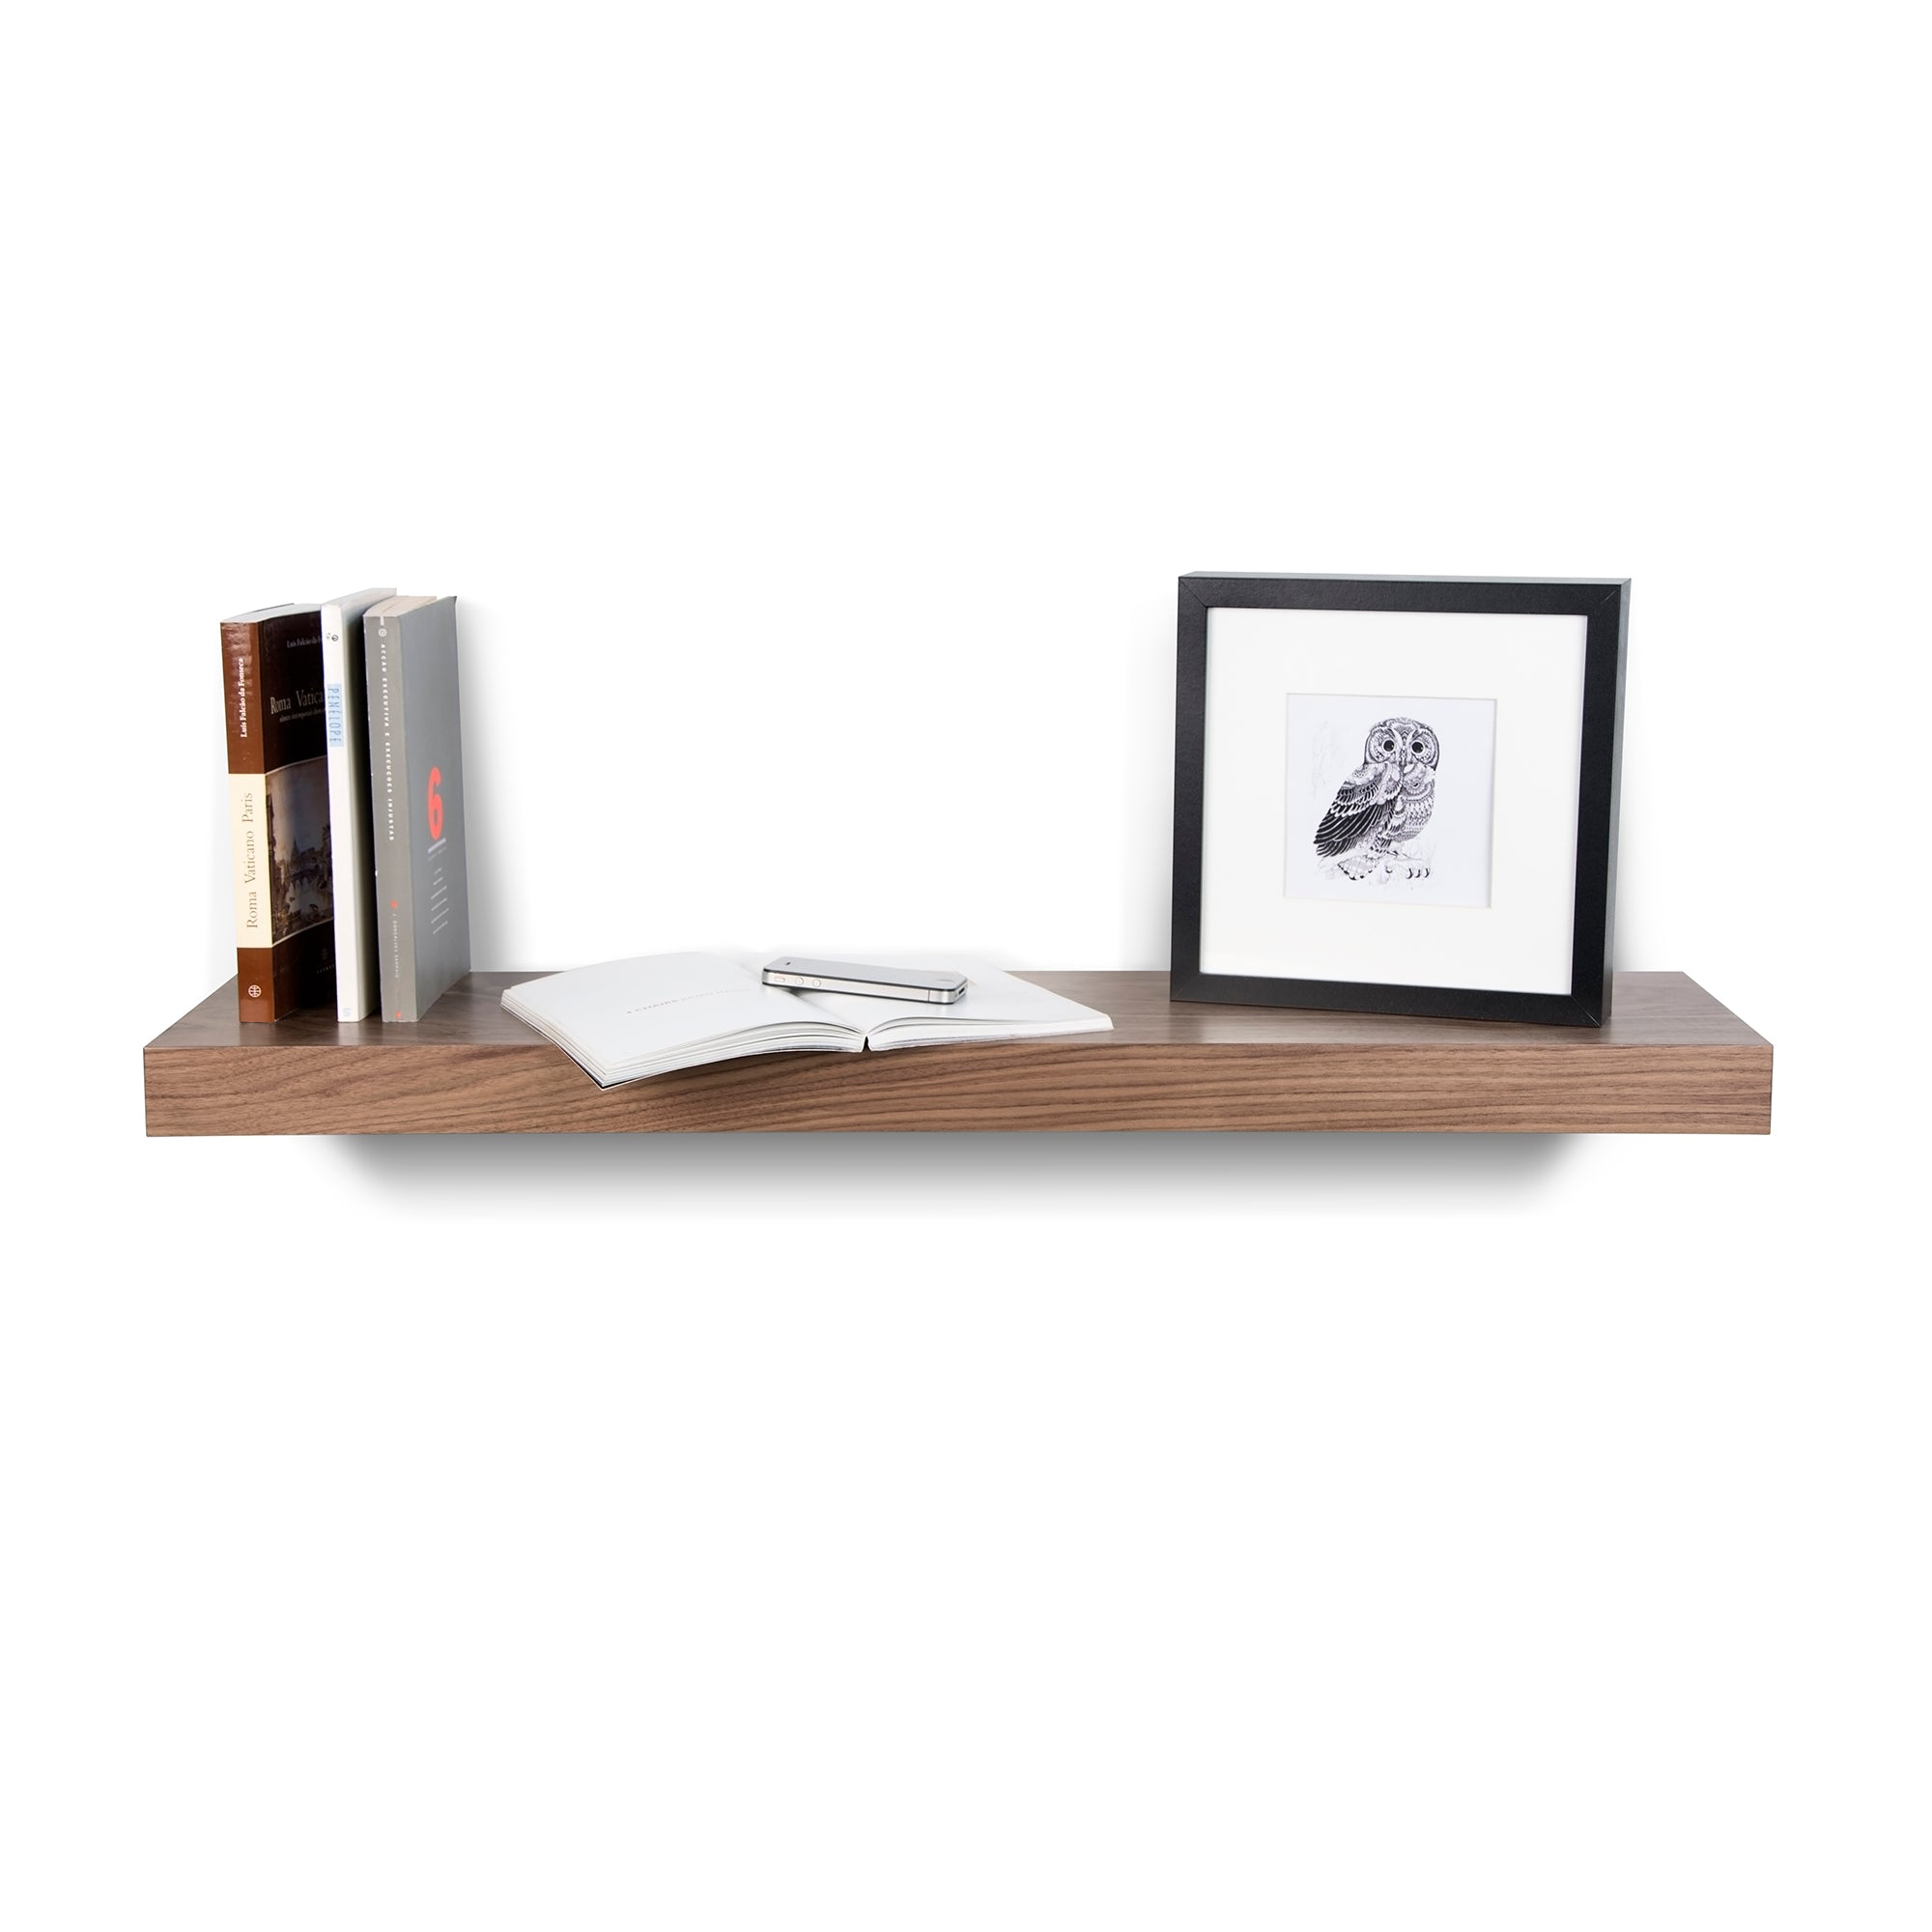 Balda Walnut Hanging Wall Shelf